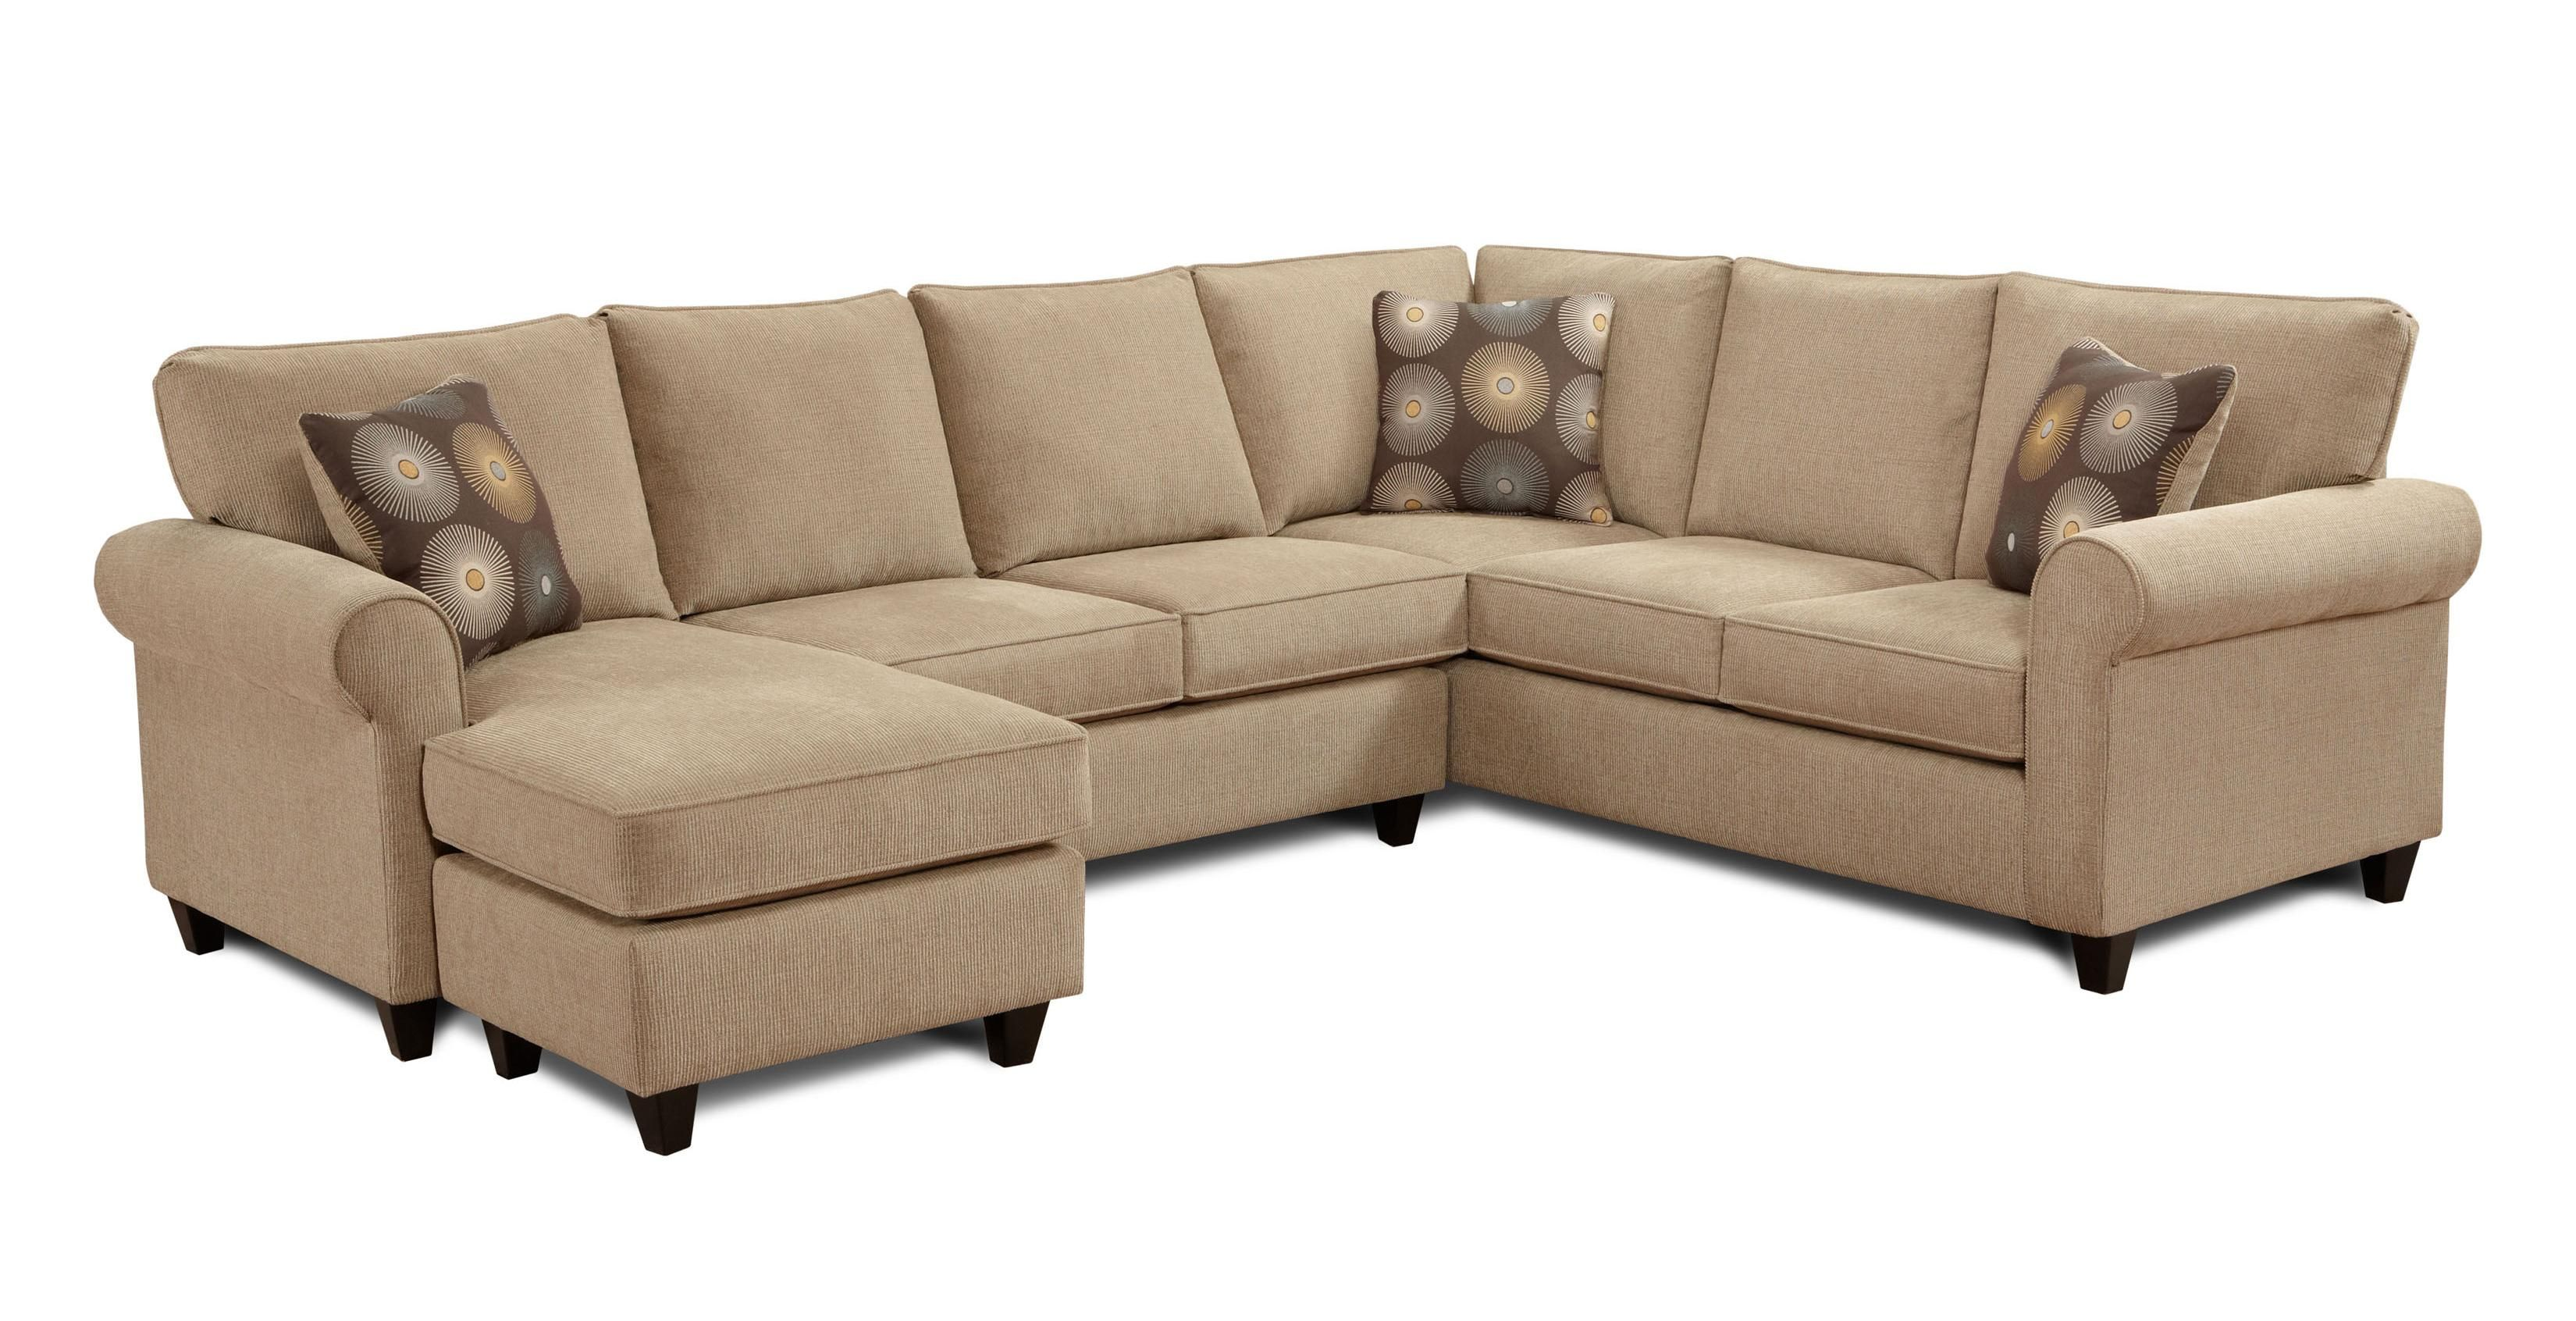 1198 1196 2 Piece Sectional With Chaise By Fusion Furniture New